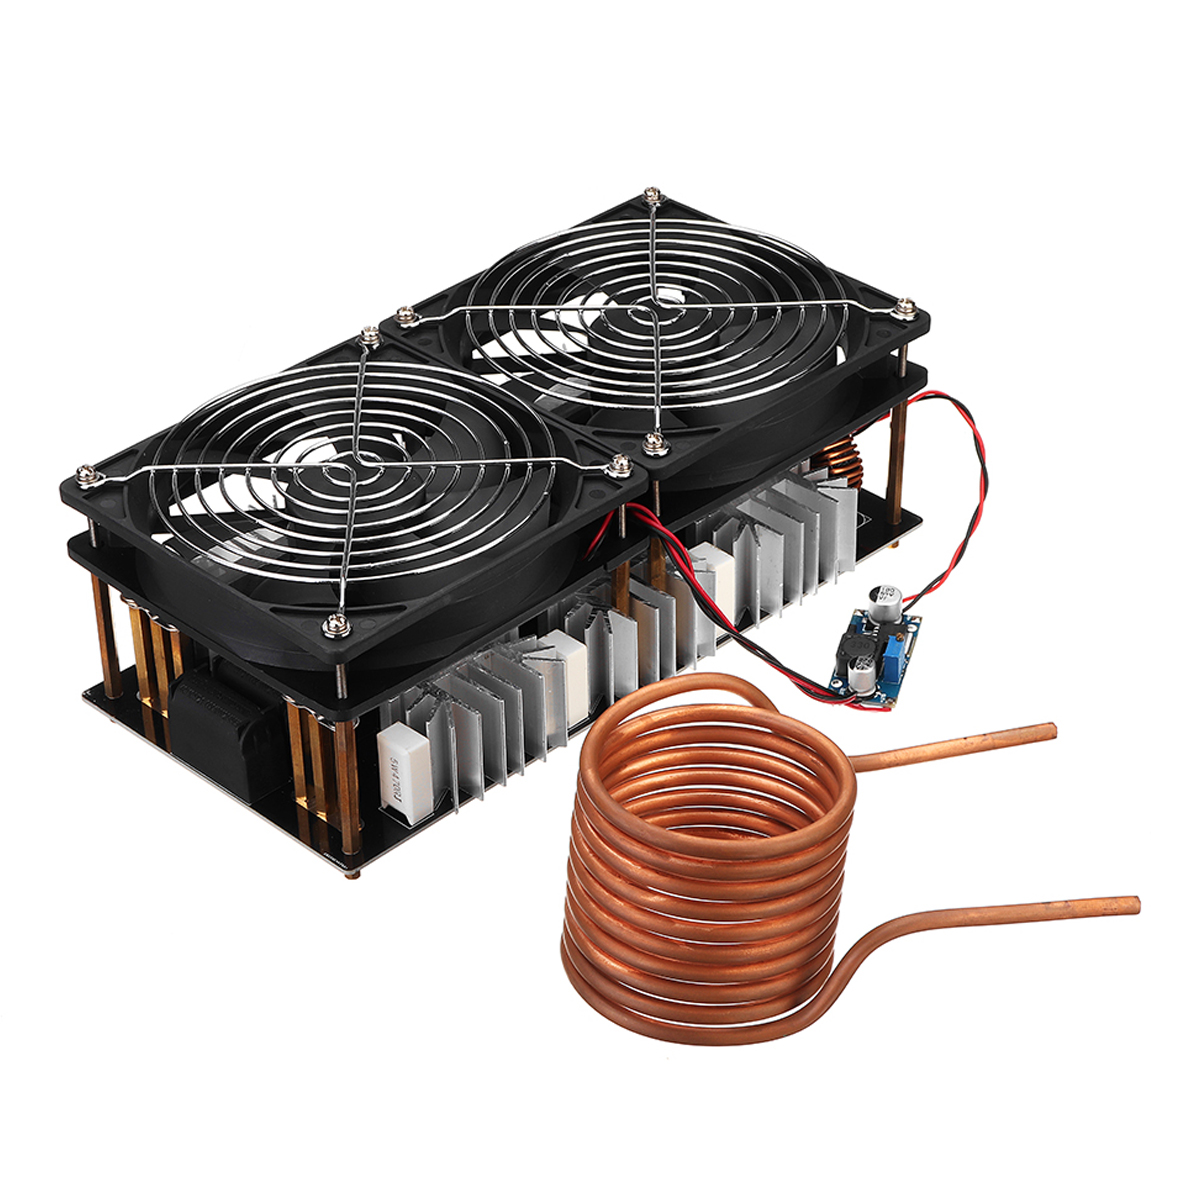 2500W ZVS Induction Heating PCB Board Module Flyback Driver Heater + Tesla Coil + Dual Fans